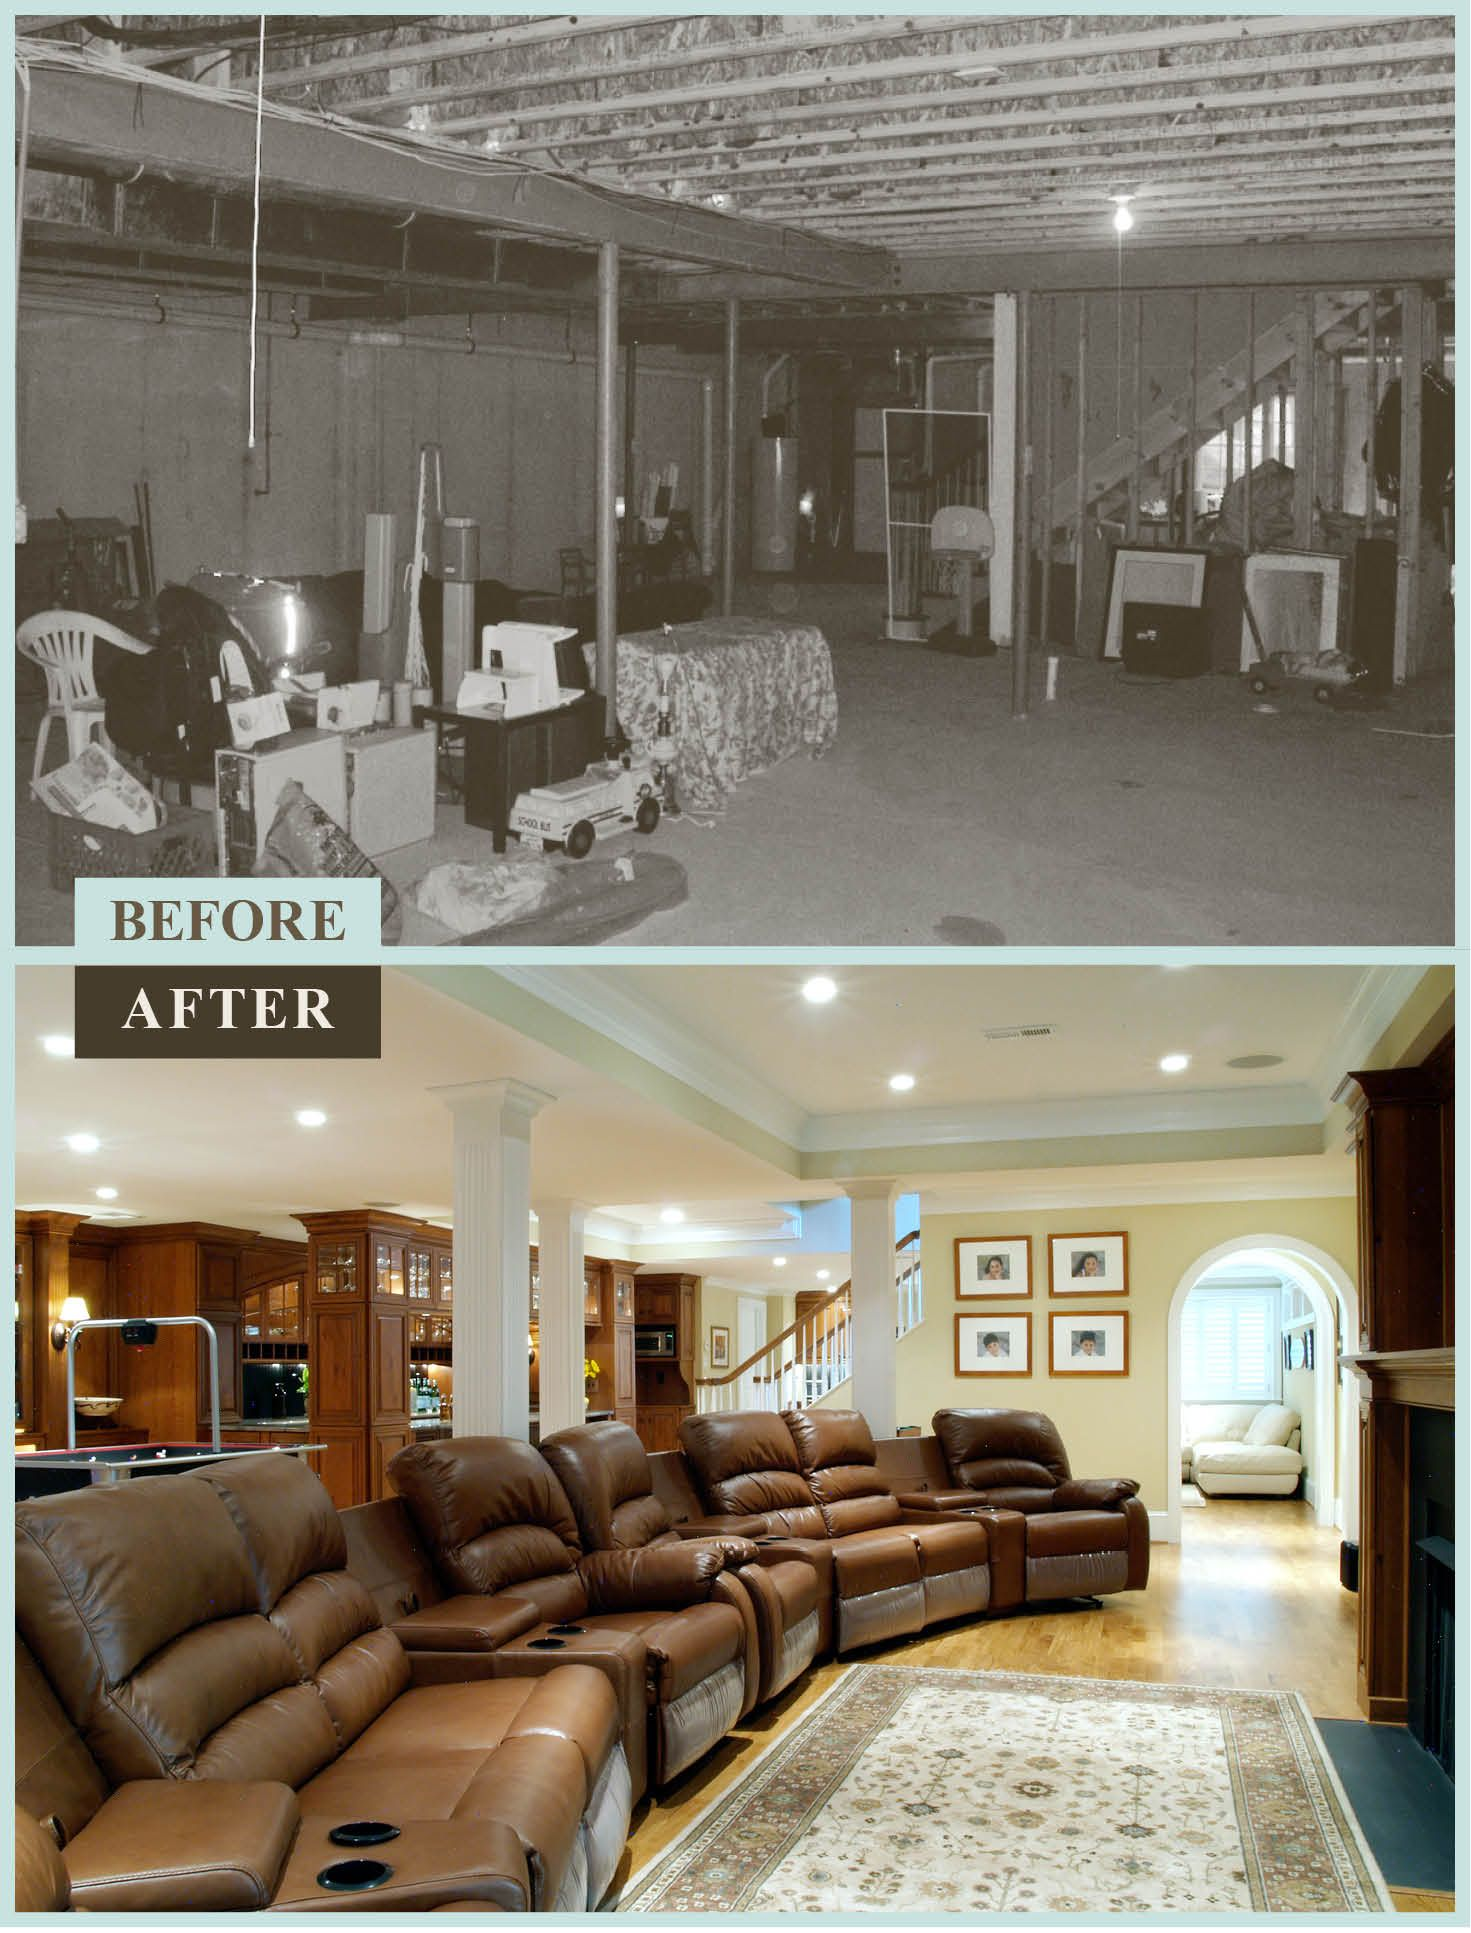 Man Cave Store Greensburg Pa : Basements before and after steeplechase lane in malvern